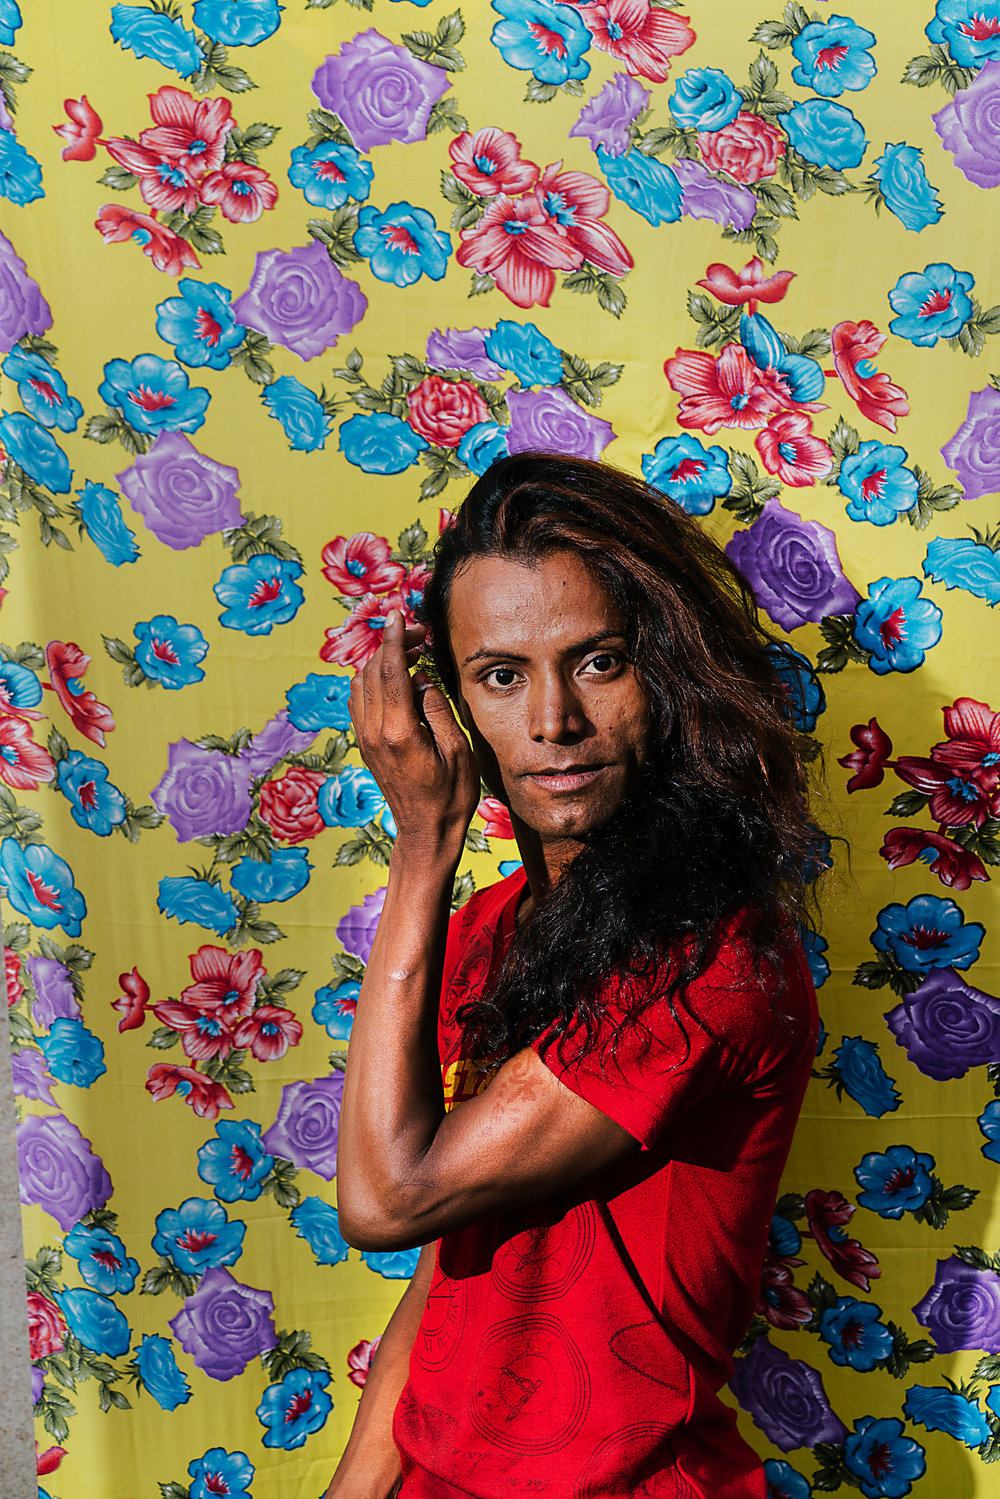 Roshni, a member of the LGBT community in Patna, Bihar state India, poses for a portrait. Patna is the capital city of Bihar State, considered one of the country�s most rural, and acceptance for the country�s LGBTQ community has been slow to arrive.